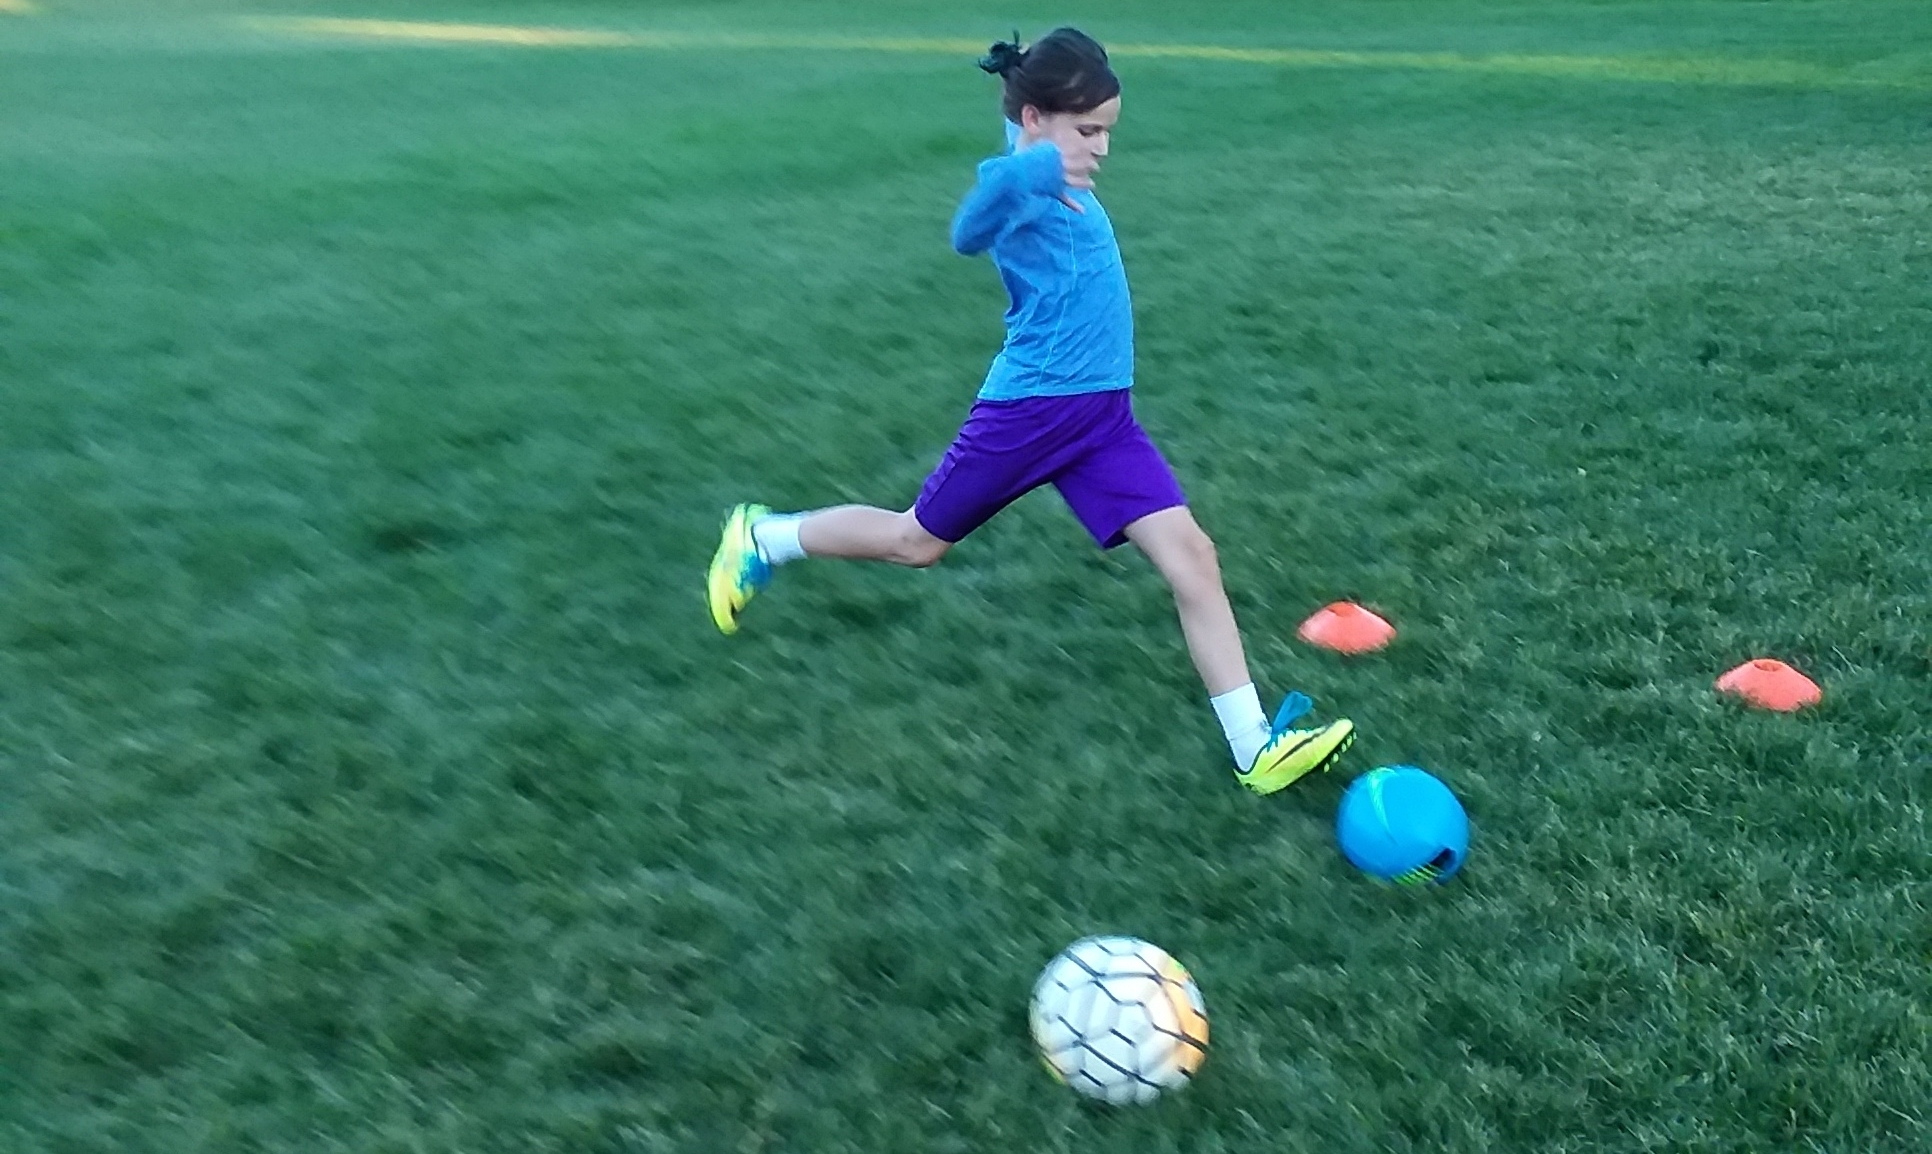 Group/Private Lessons - We offer group or private training in virtue through soccer, basketball, tennis, and more.